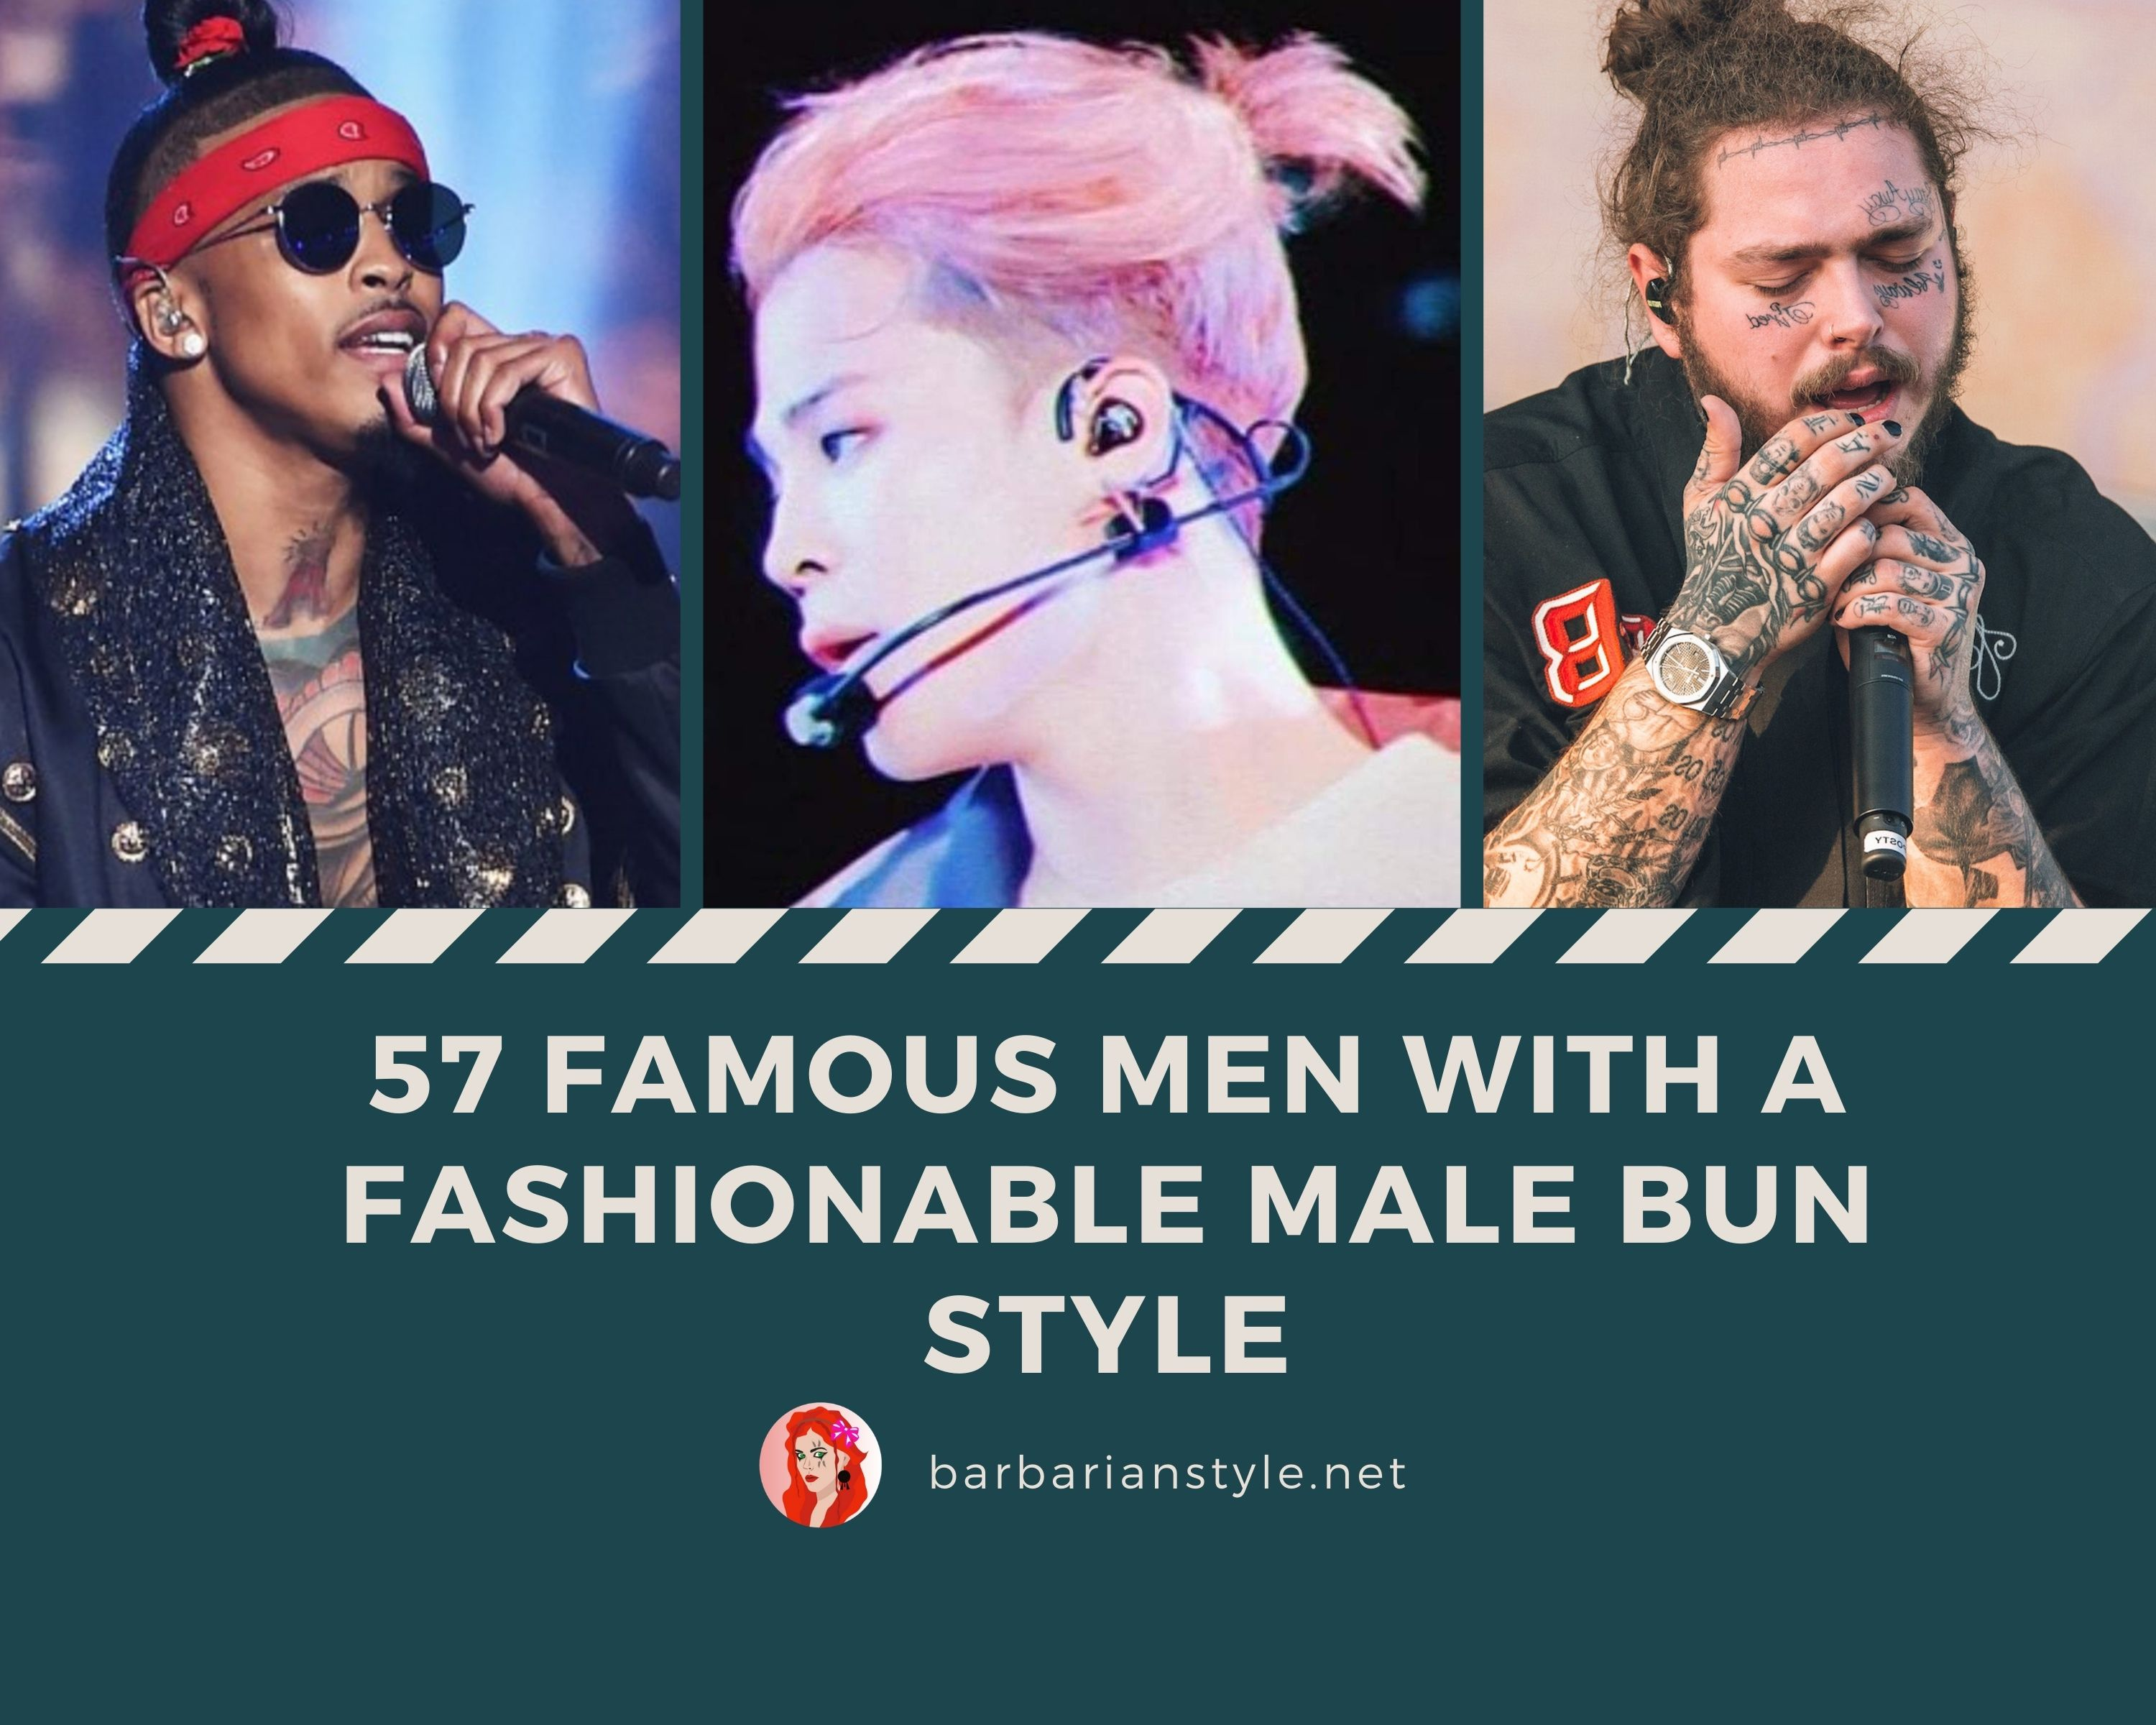 57 Famous Men with a Fashionable Male Bun Style